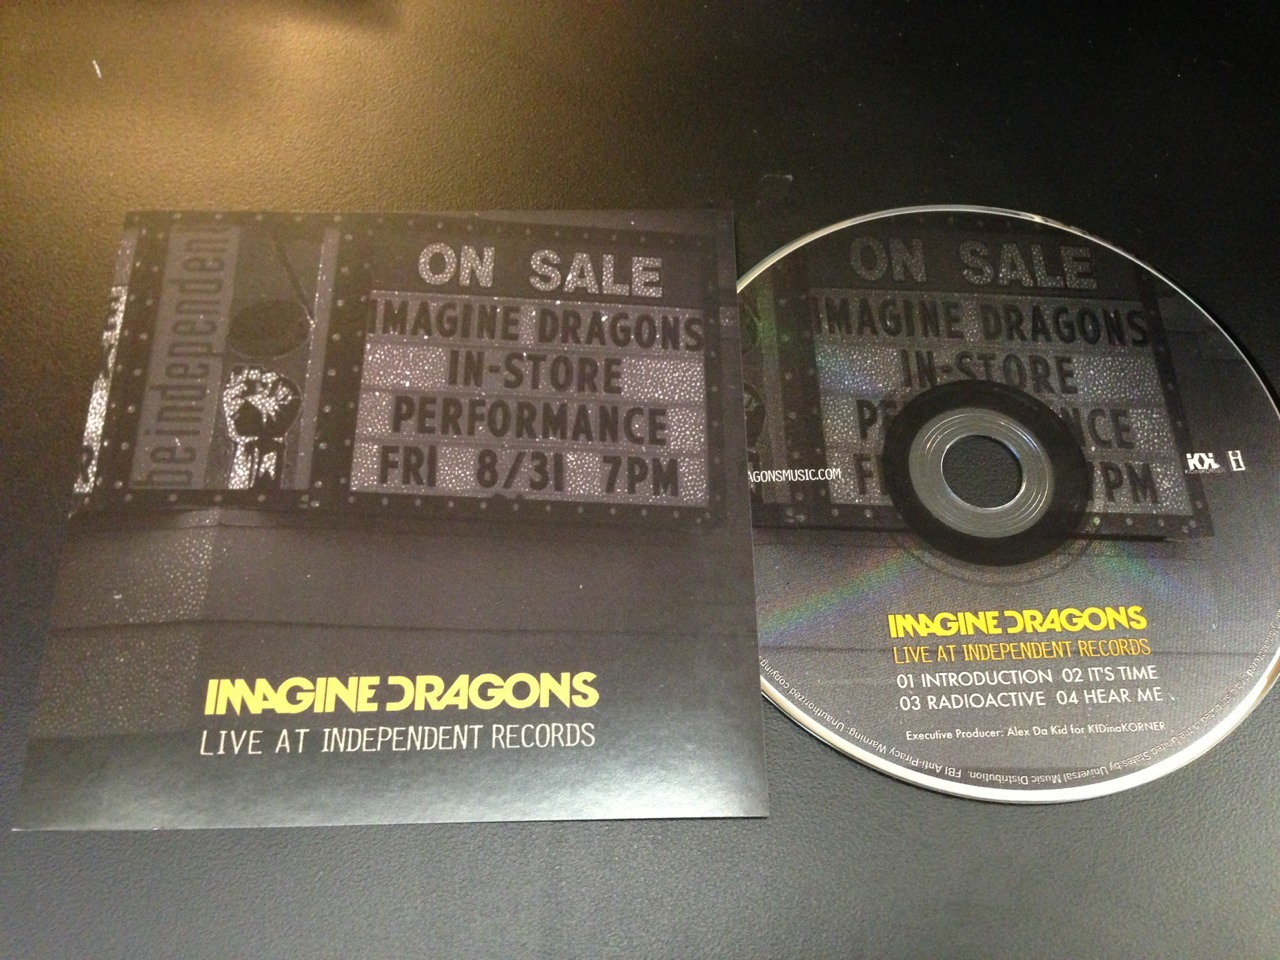 CD art for the Imagine Dragons live at Independent Records release for Record Store Day 2013